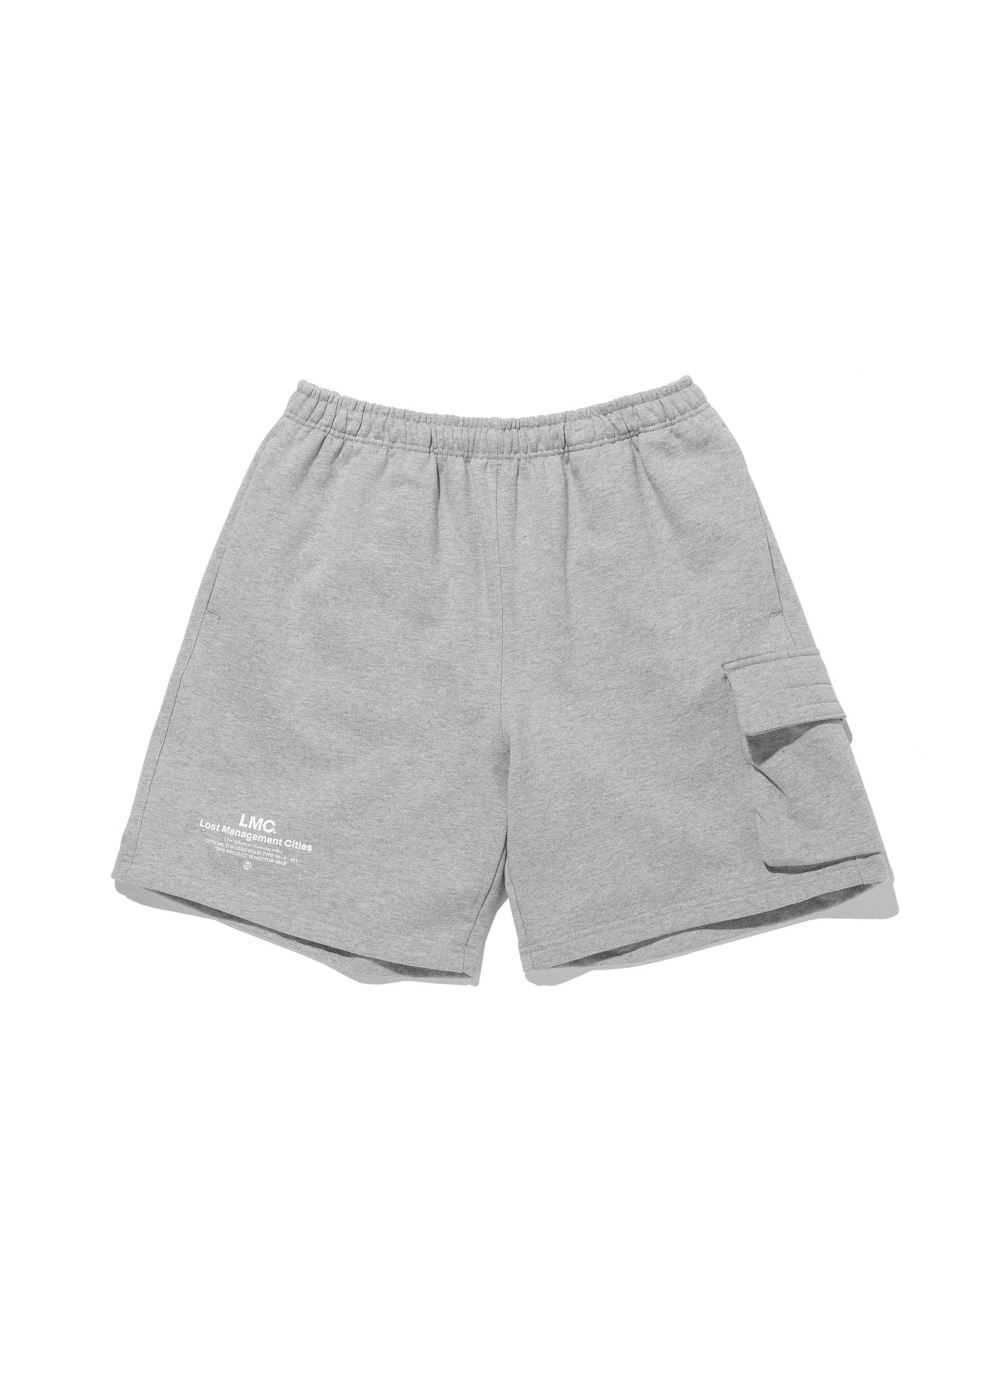 LMC SIDE POCKET SWEAT SHORTS heather gray